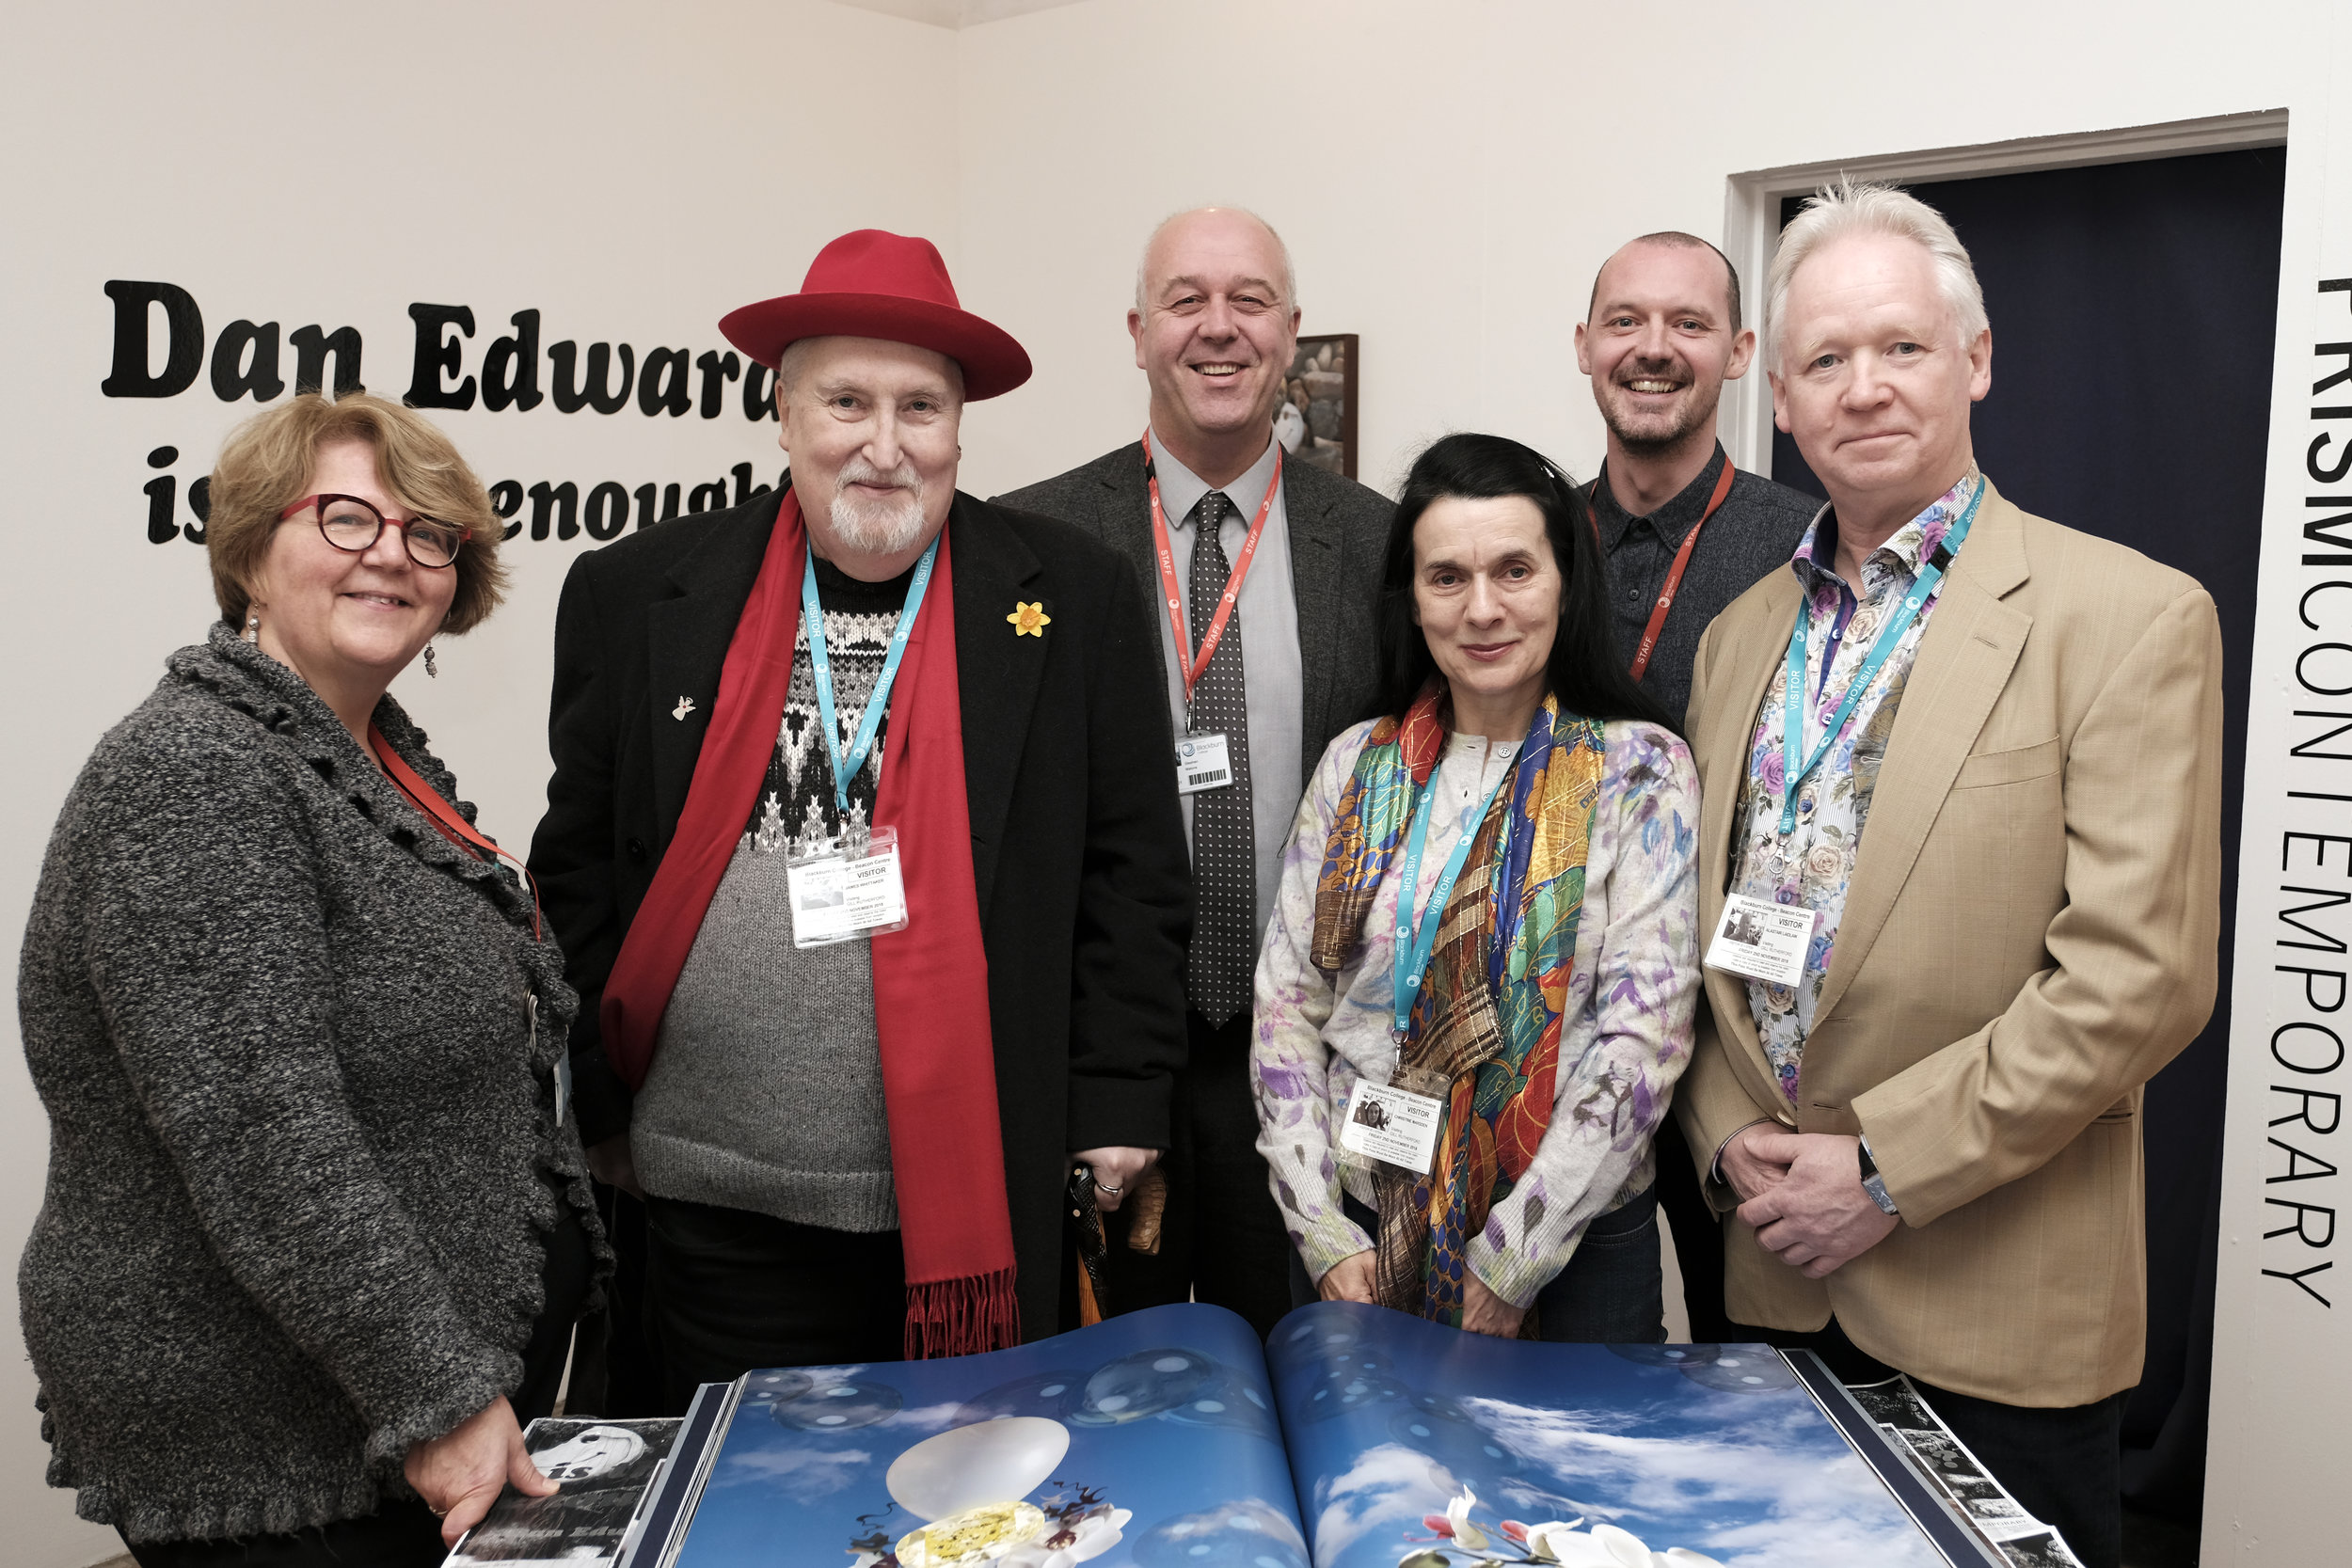 From left:  Gill Rutherford, James A Whittaker, Stephen Malone, Christine Marsden, Steve Baldwin and Alastair Laidlaw     All Photos by IVOR WOOD